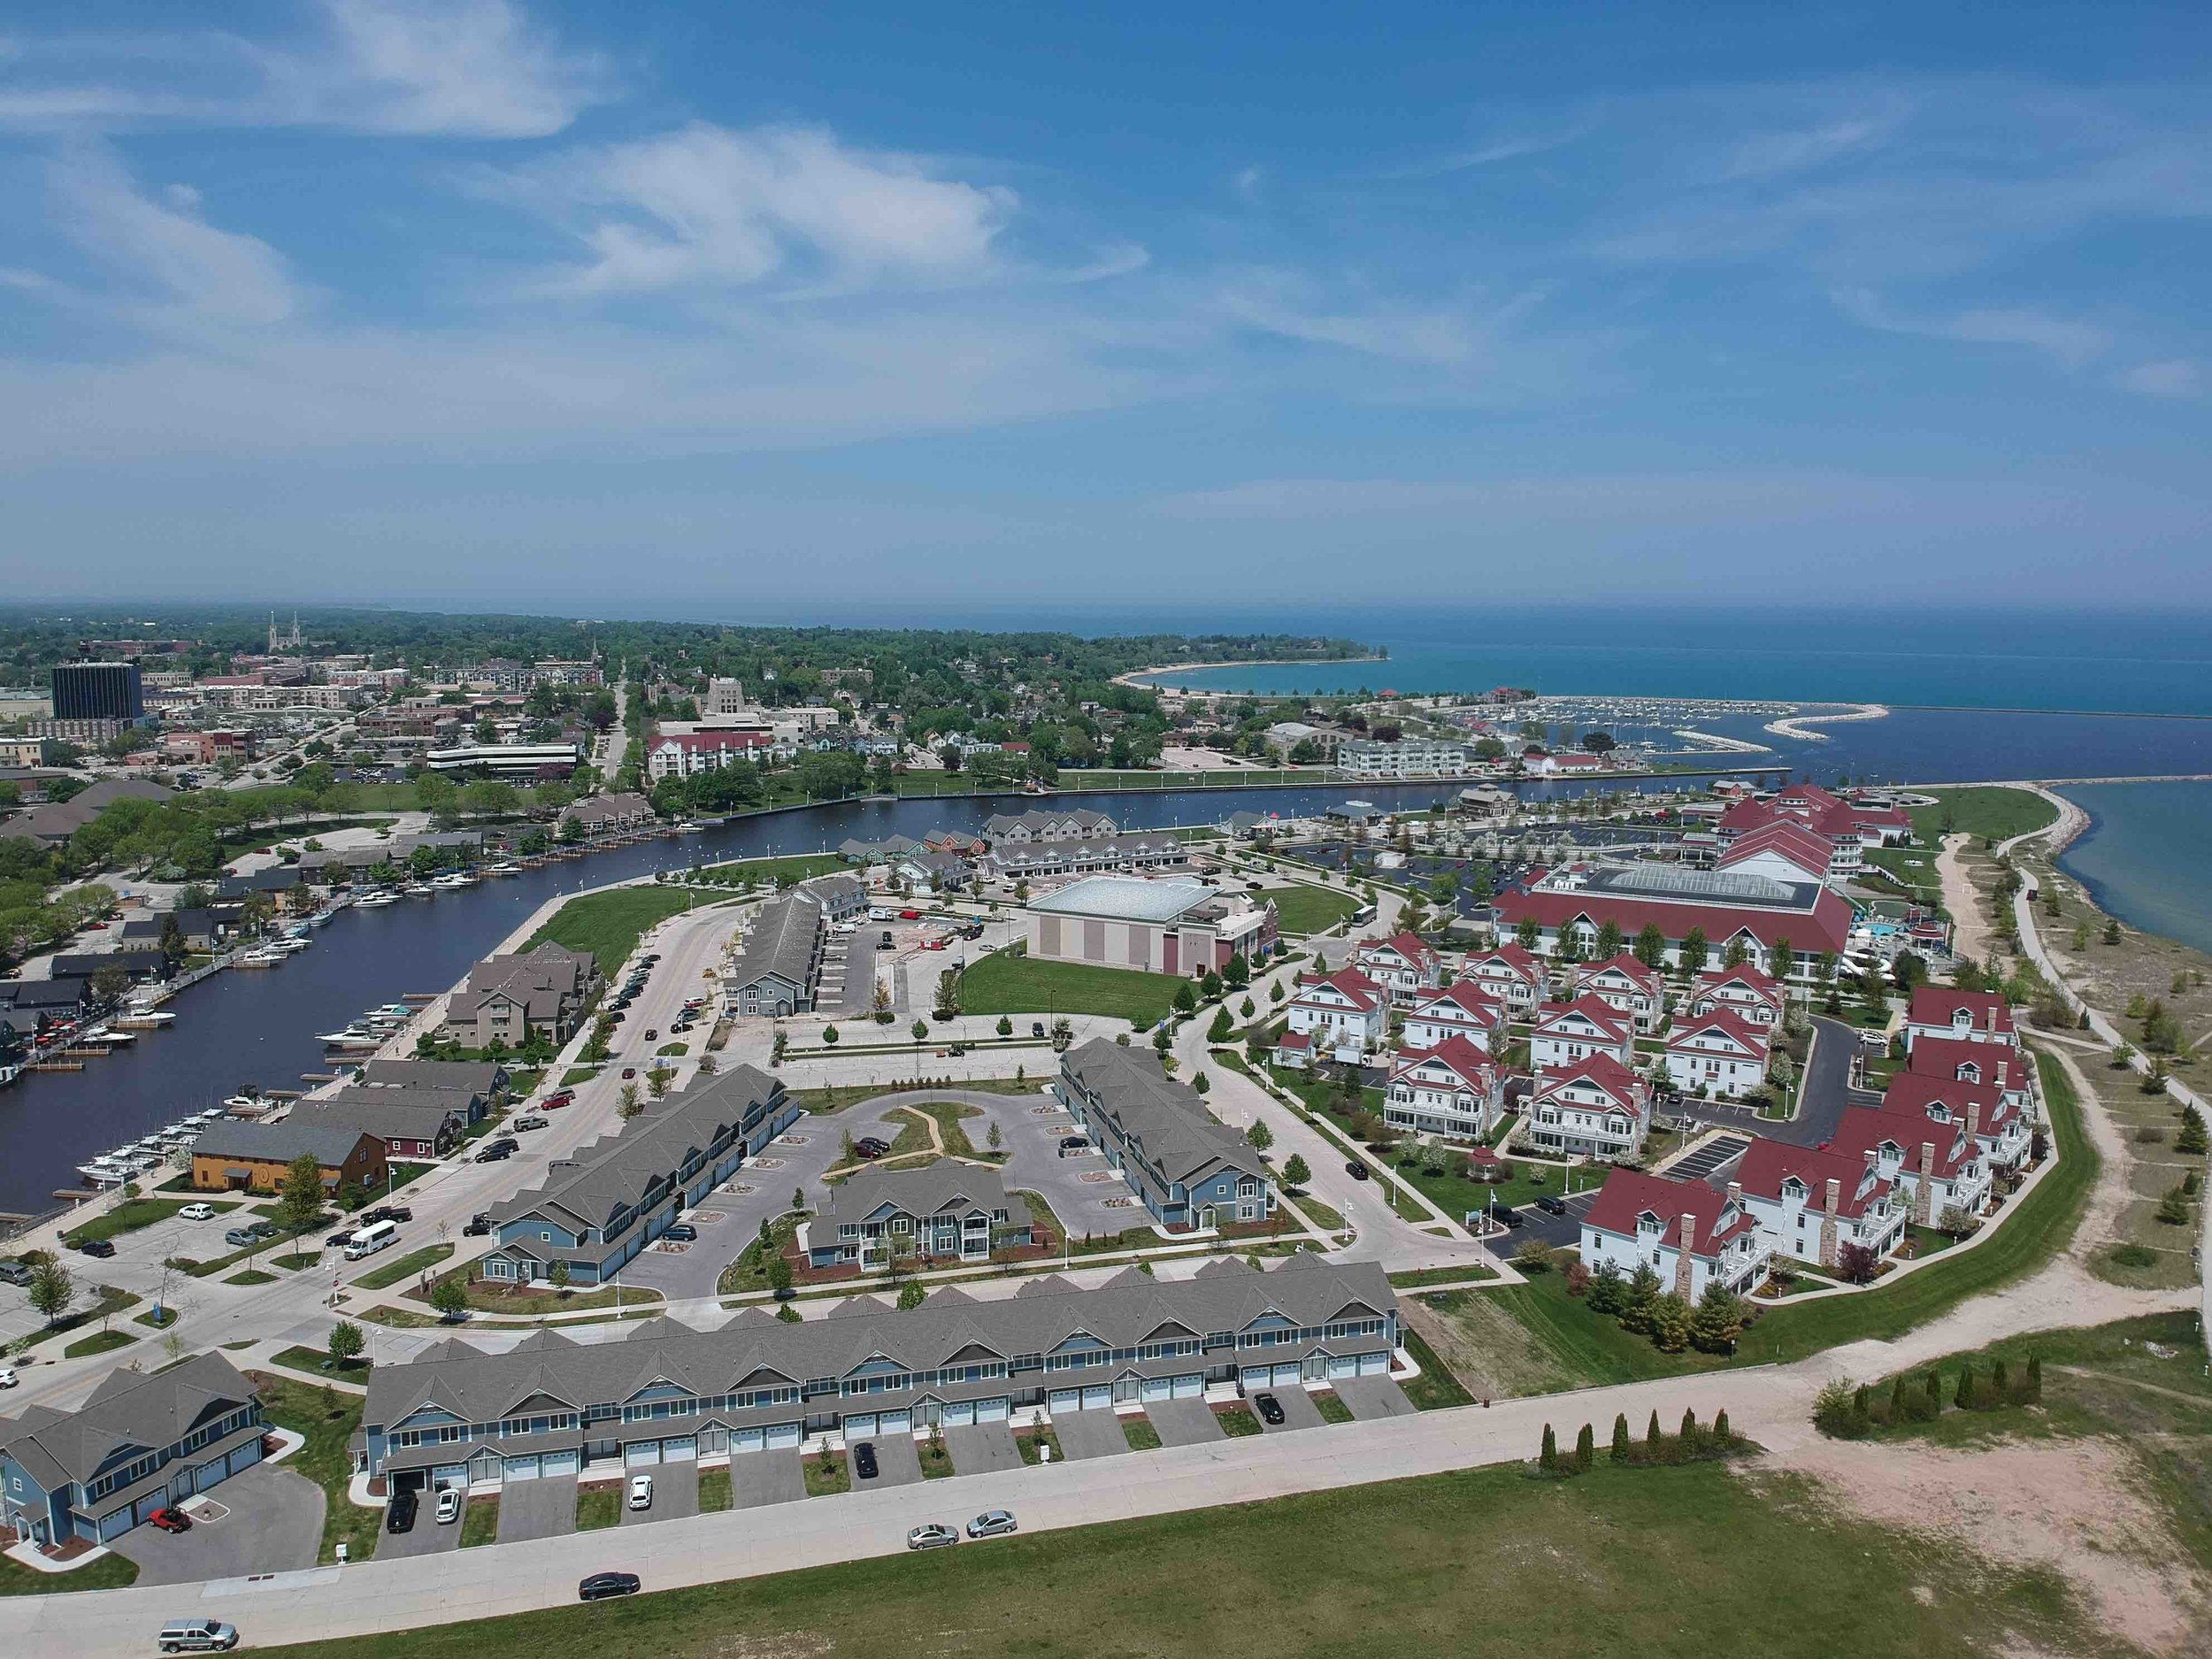 Photo Credit: Department of City Development, City of Sheboygan